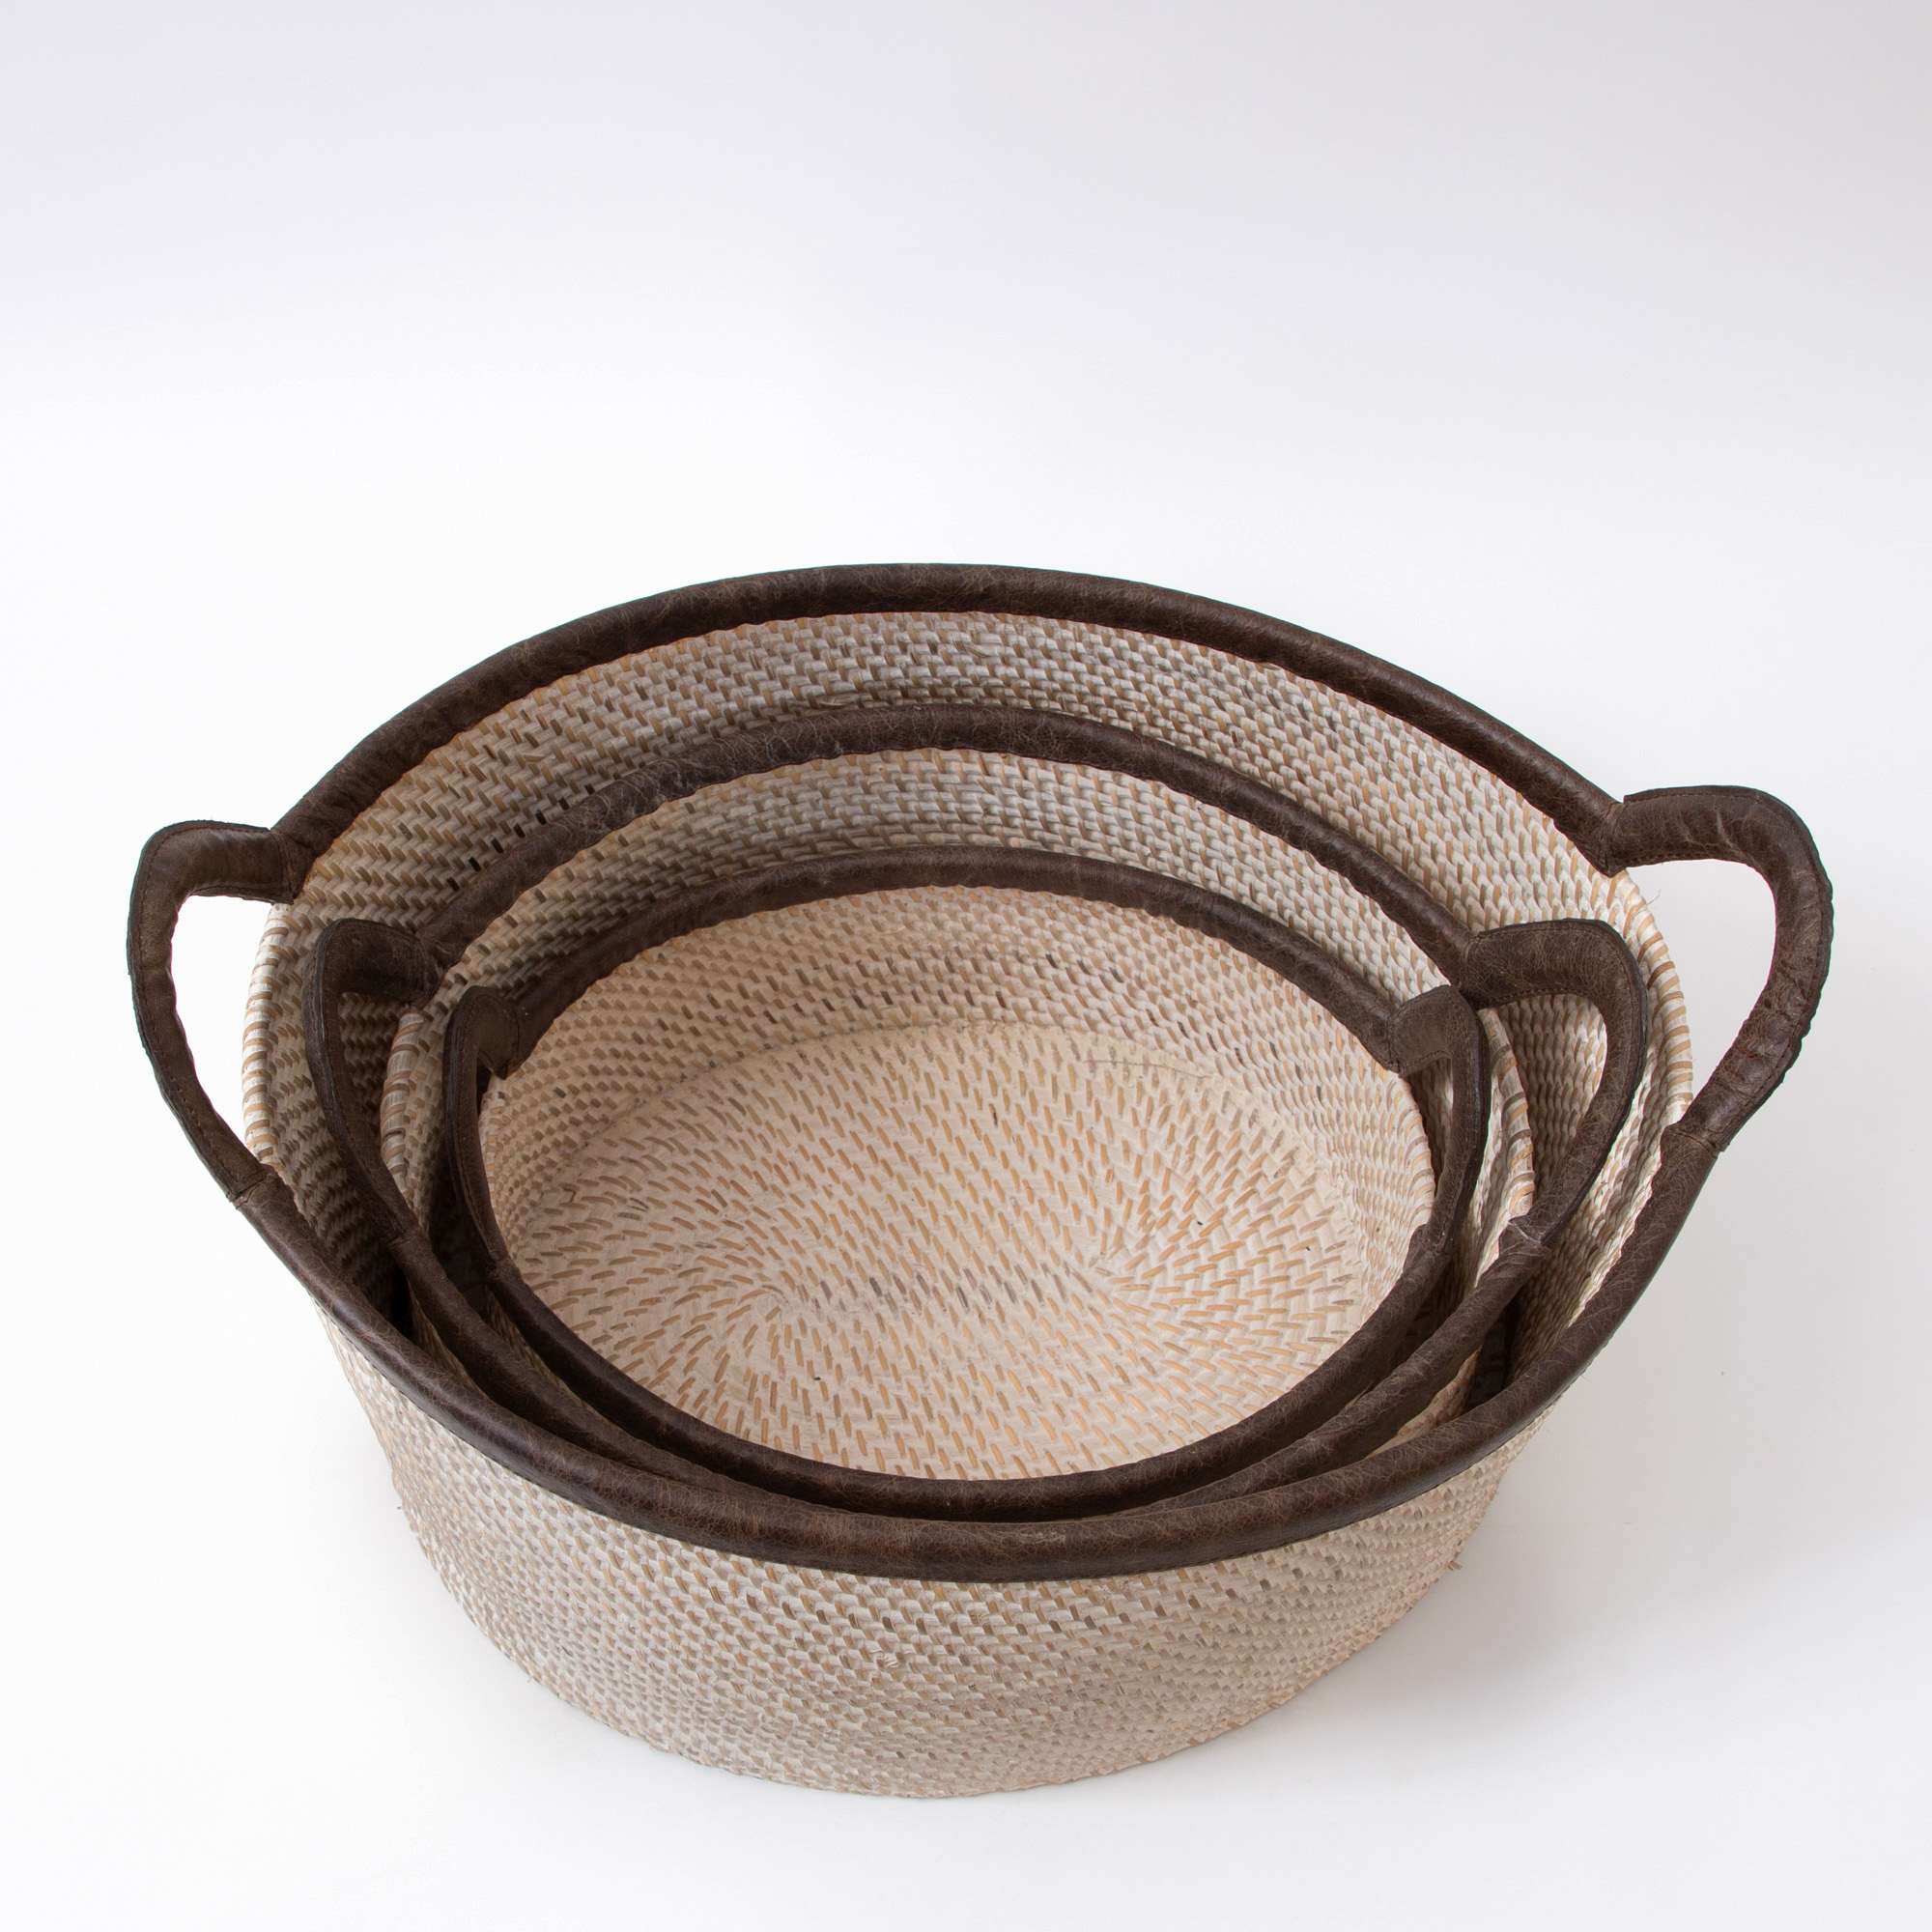 Hata Rattan Woven Baskets  With Side Swing Handles – Natural